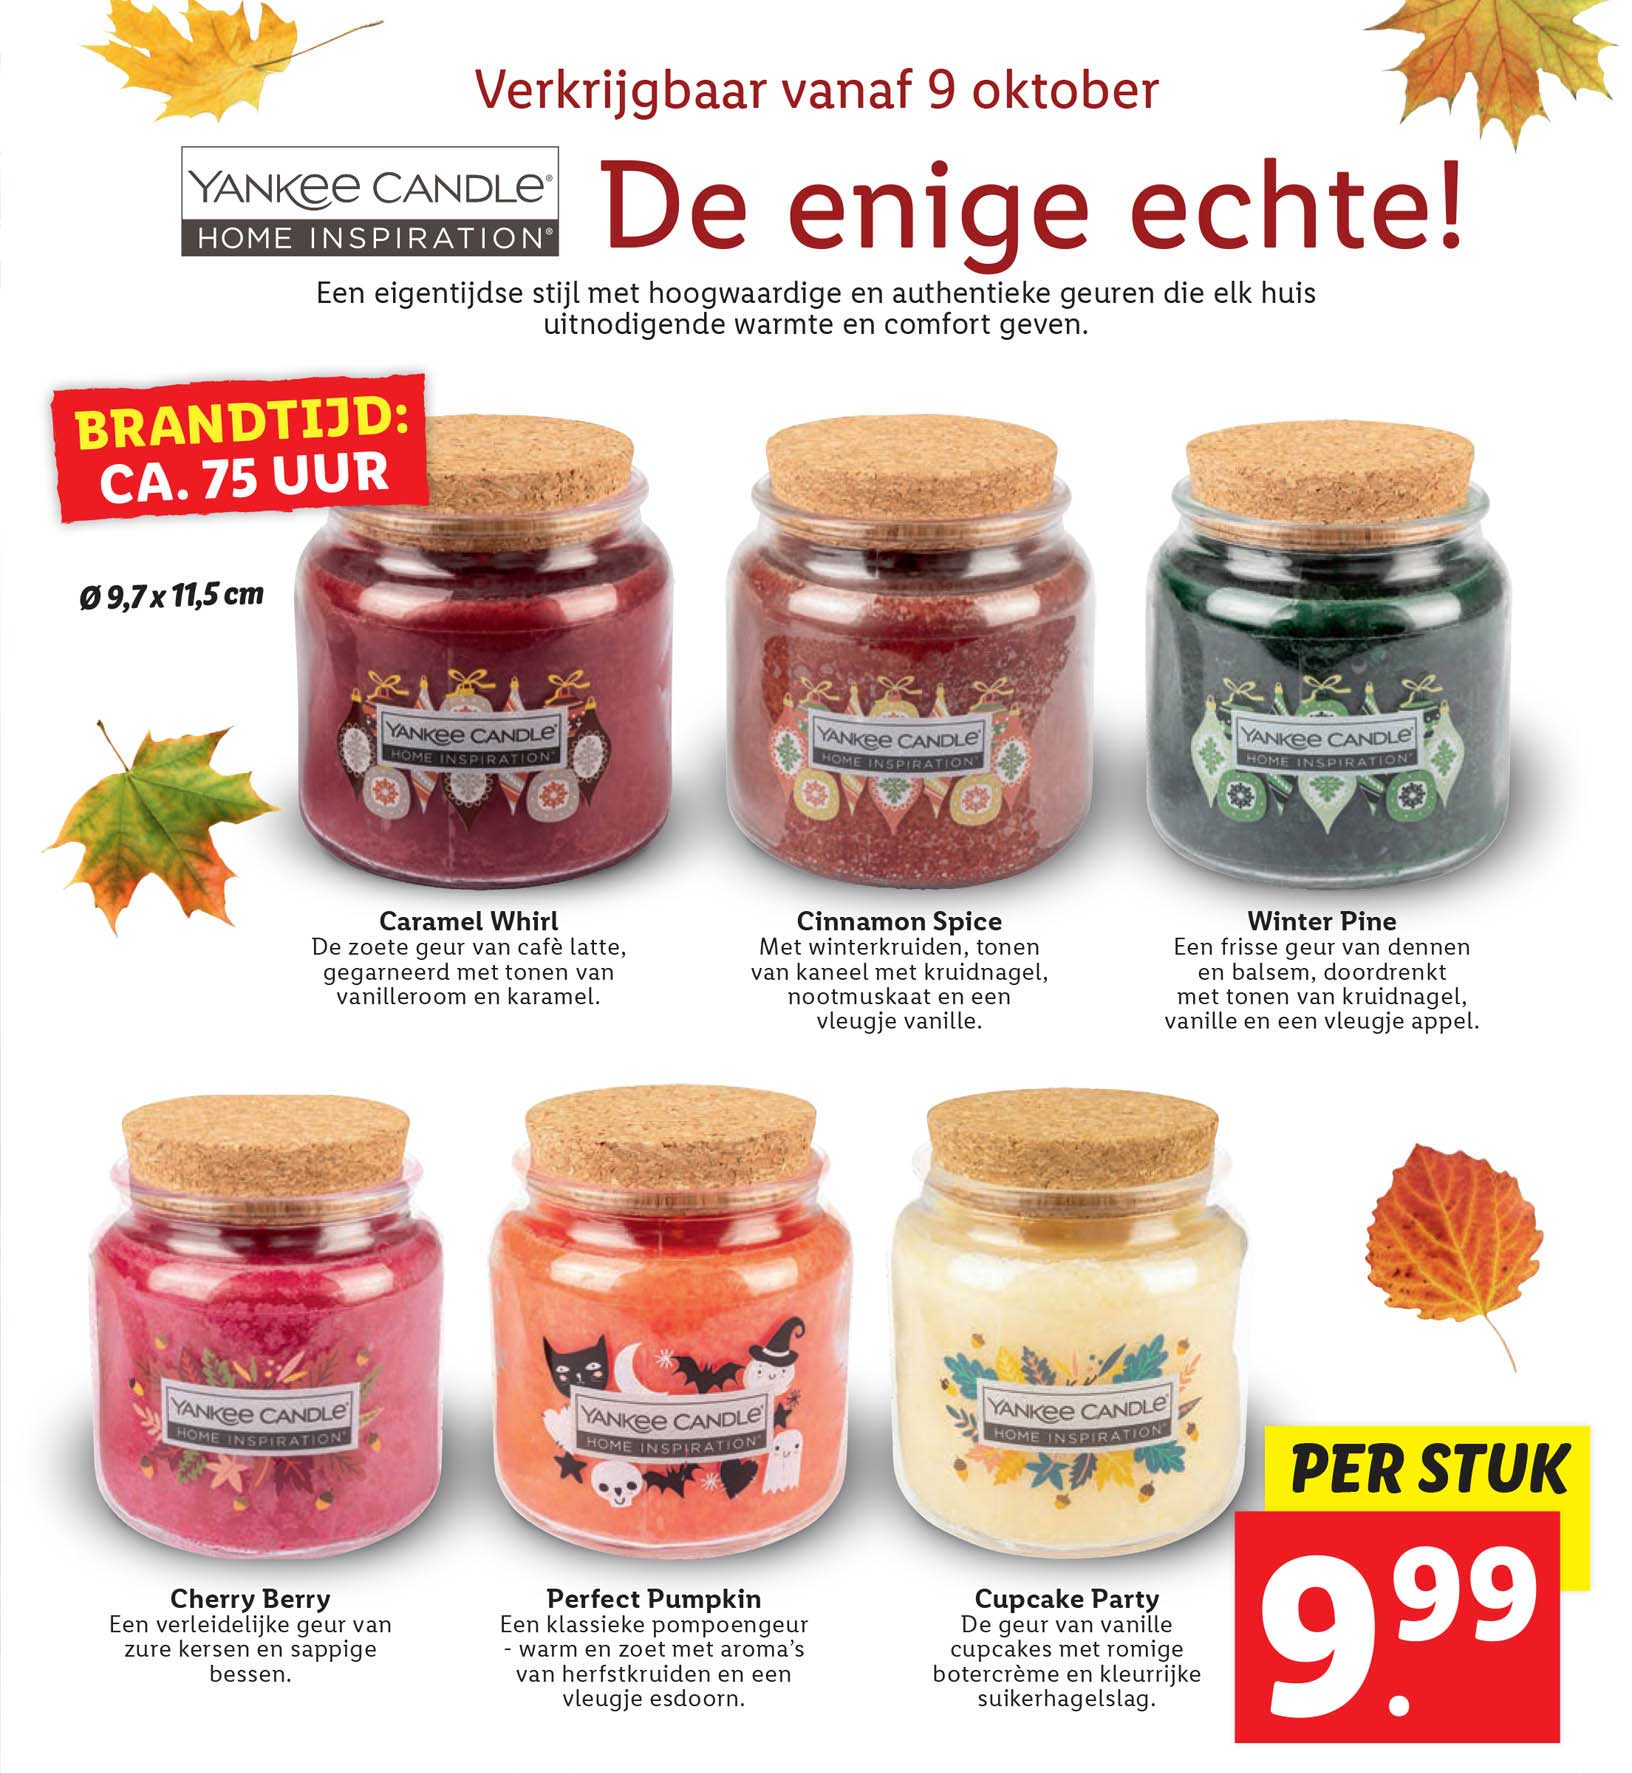 Lidl Yankee Candle Caramel Whirl, Cinnamon Spice, Winter Pine, Cherry Berry, Perfect Pumpkin Of Cupcake Party